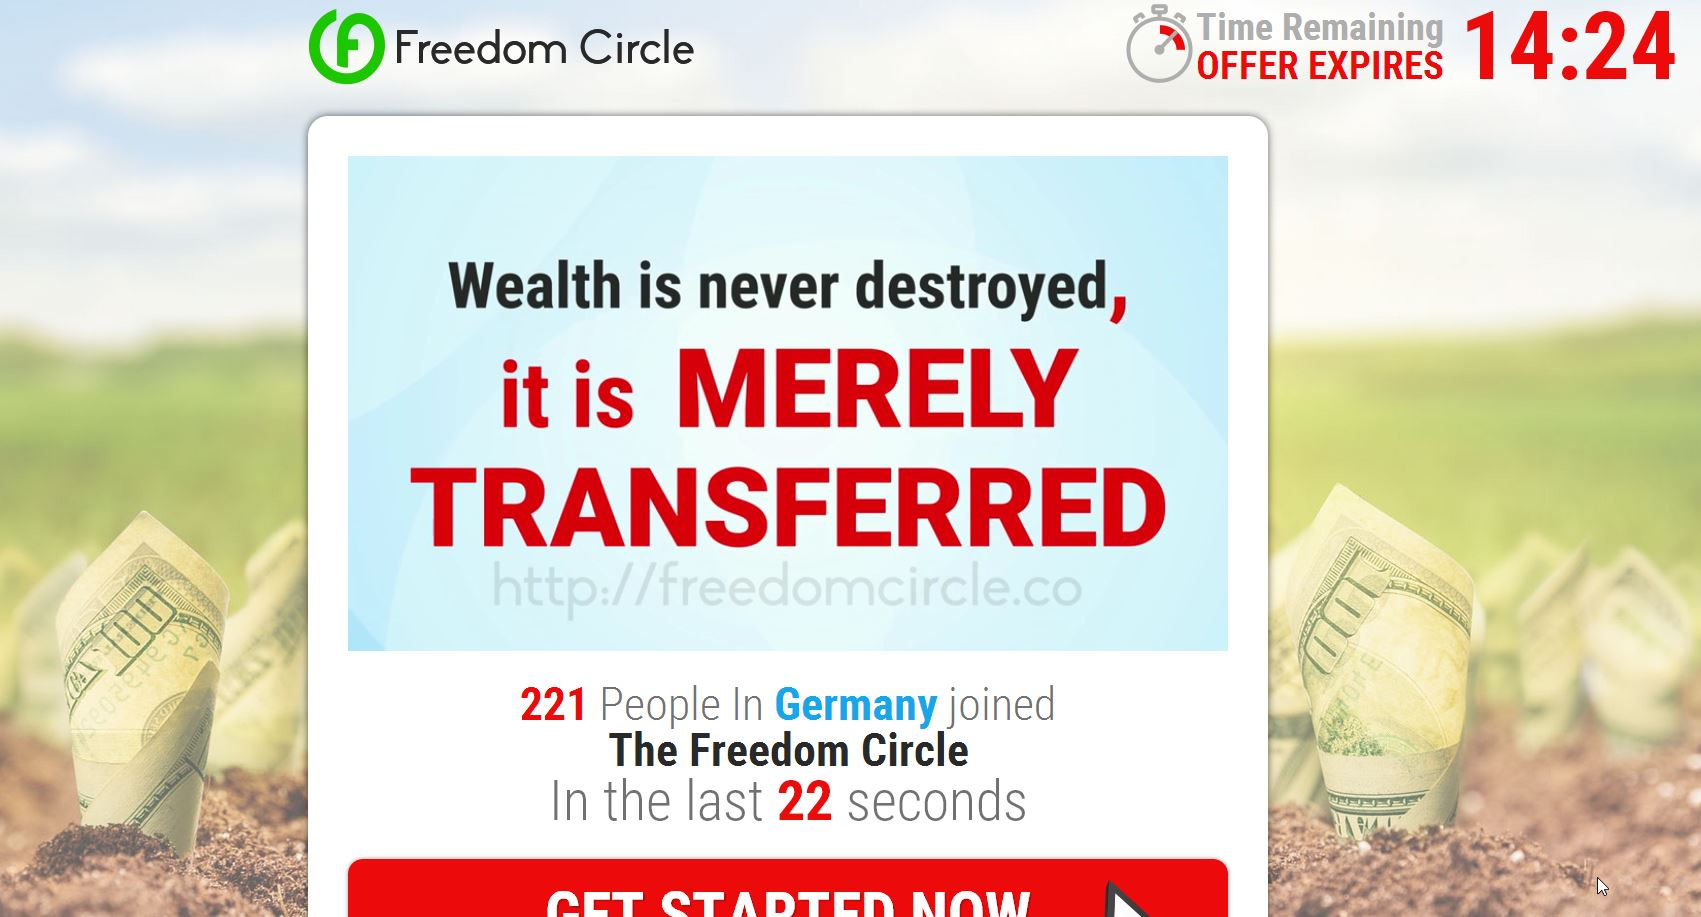 Insiders circle binary options scam